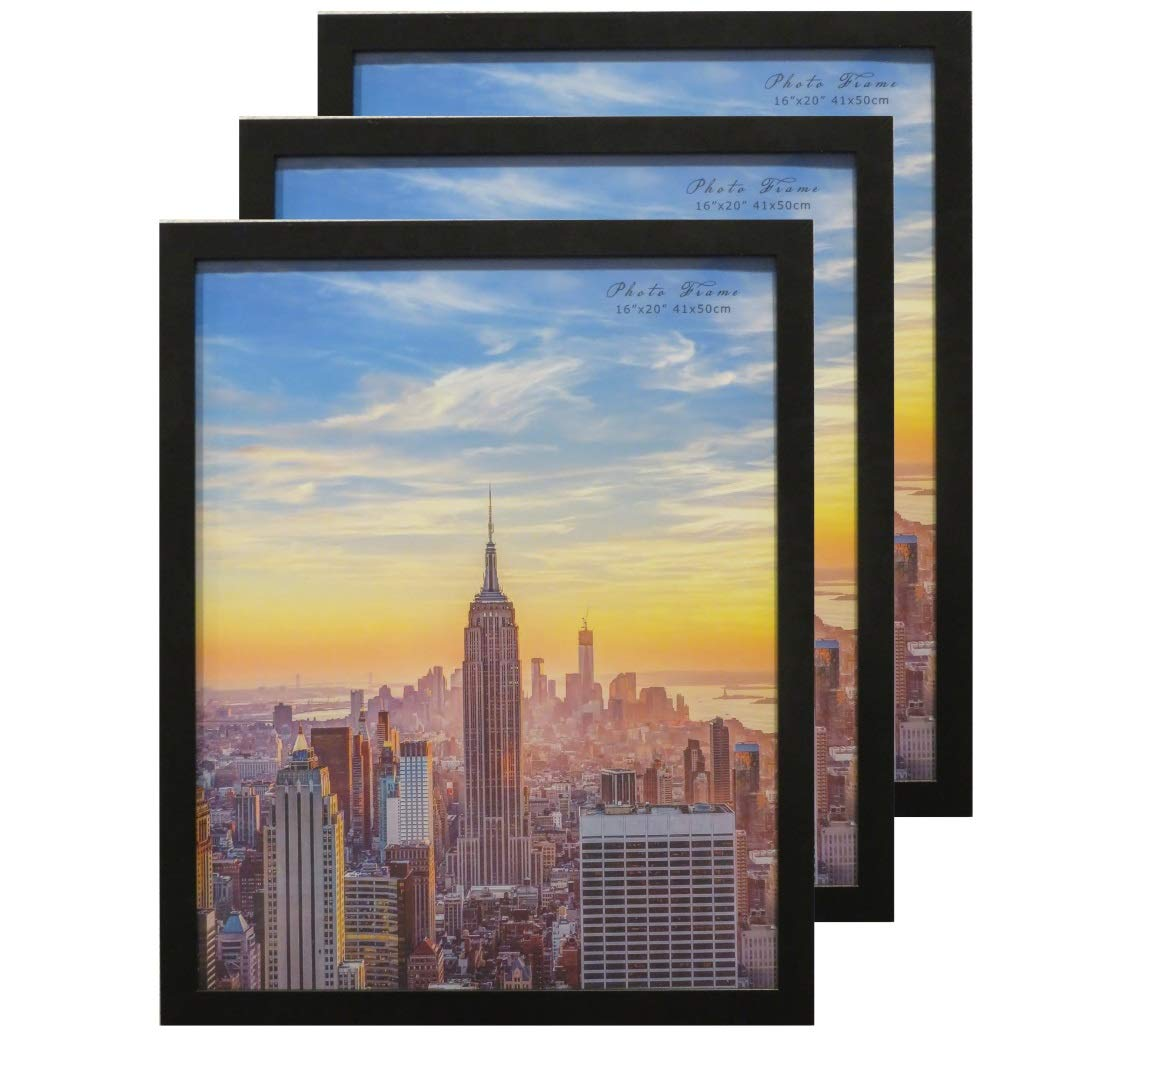 Frame Amo 16x20 Black Modern Wood Picture or Poster Frame, 1 inch Wide Border, 3-Pack by Frame Amo